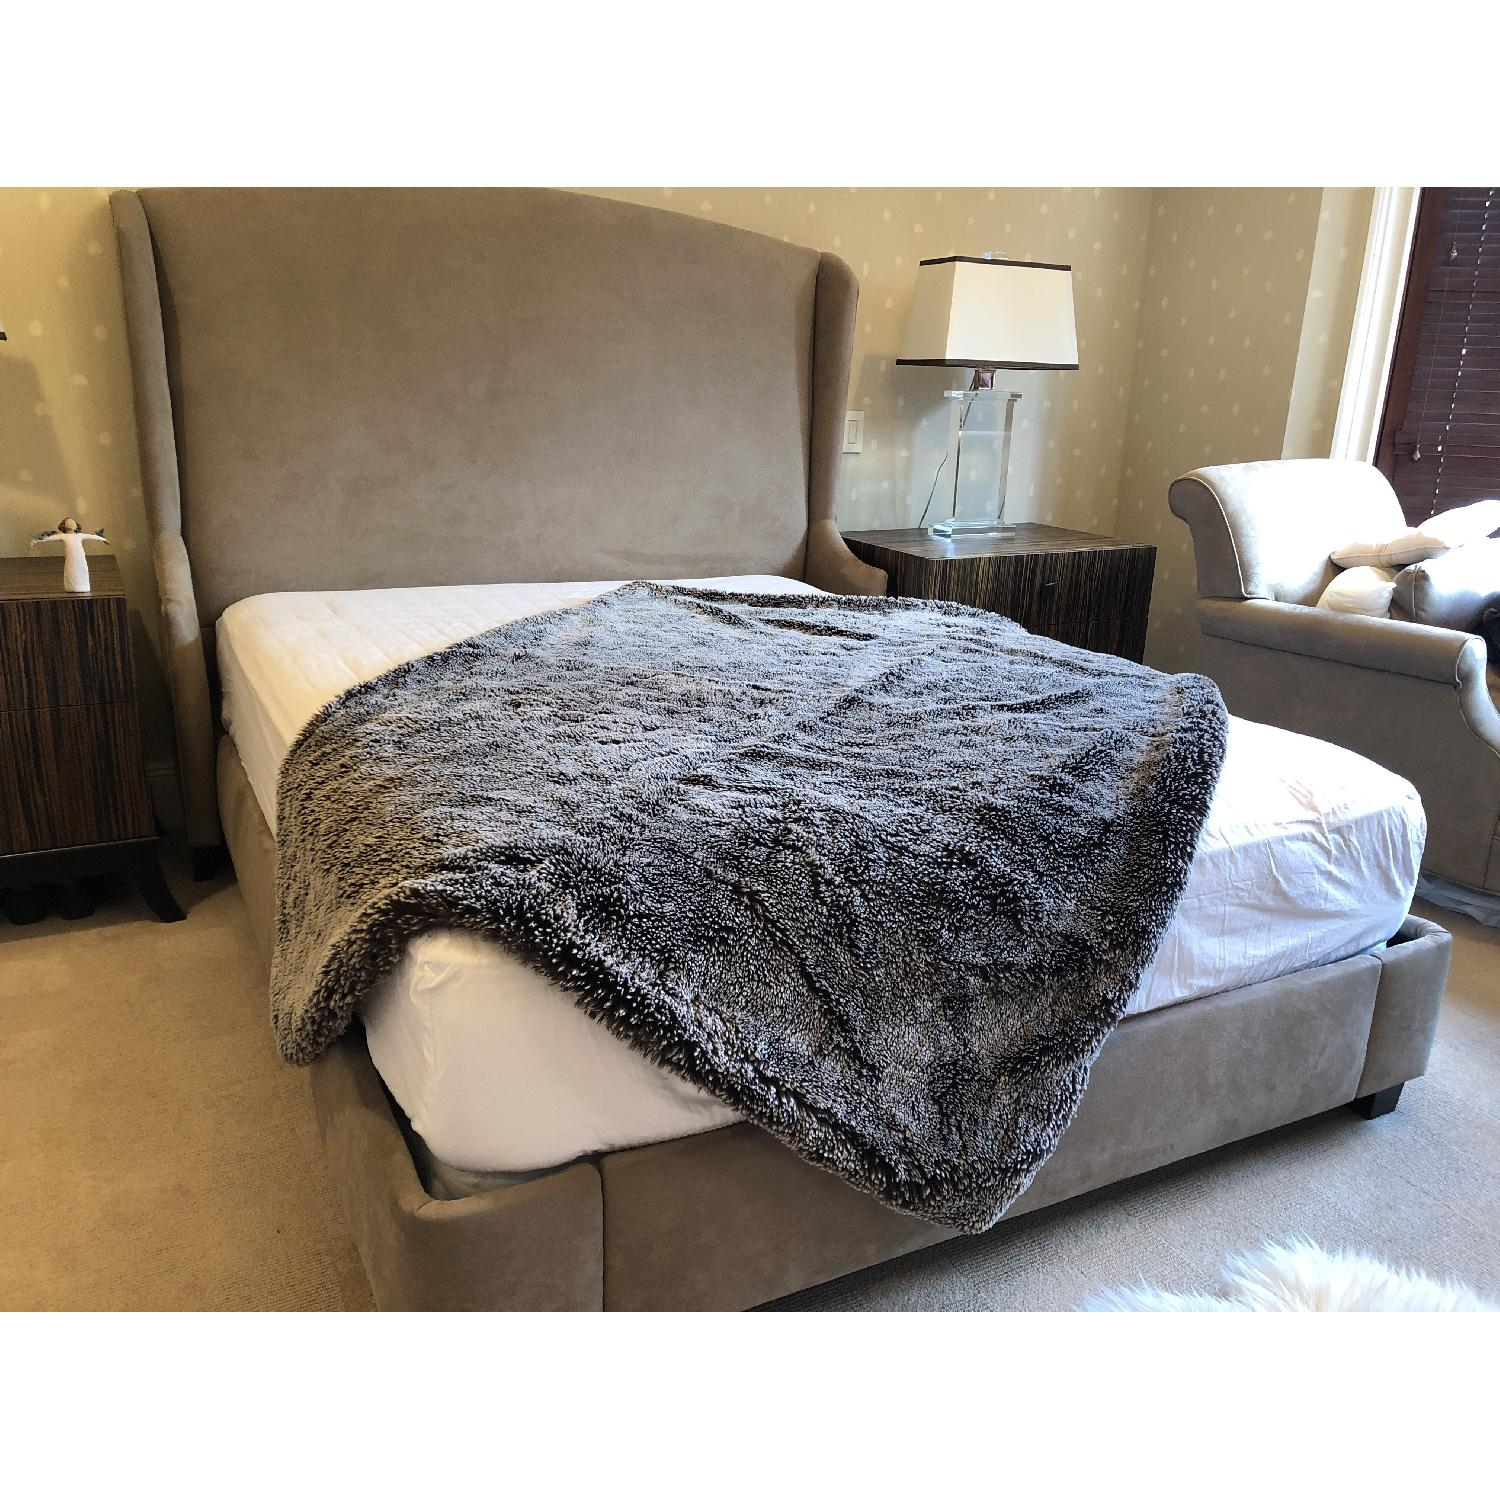 Modern Queen Size Bed - image-5